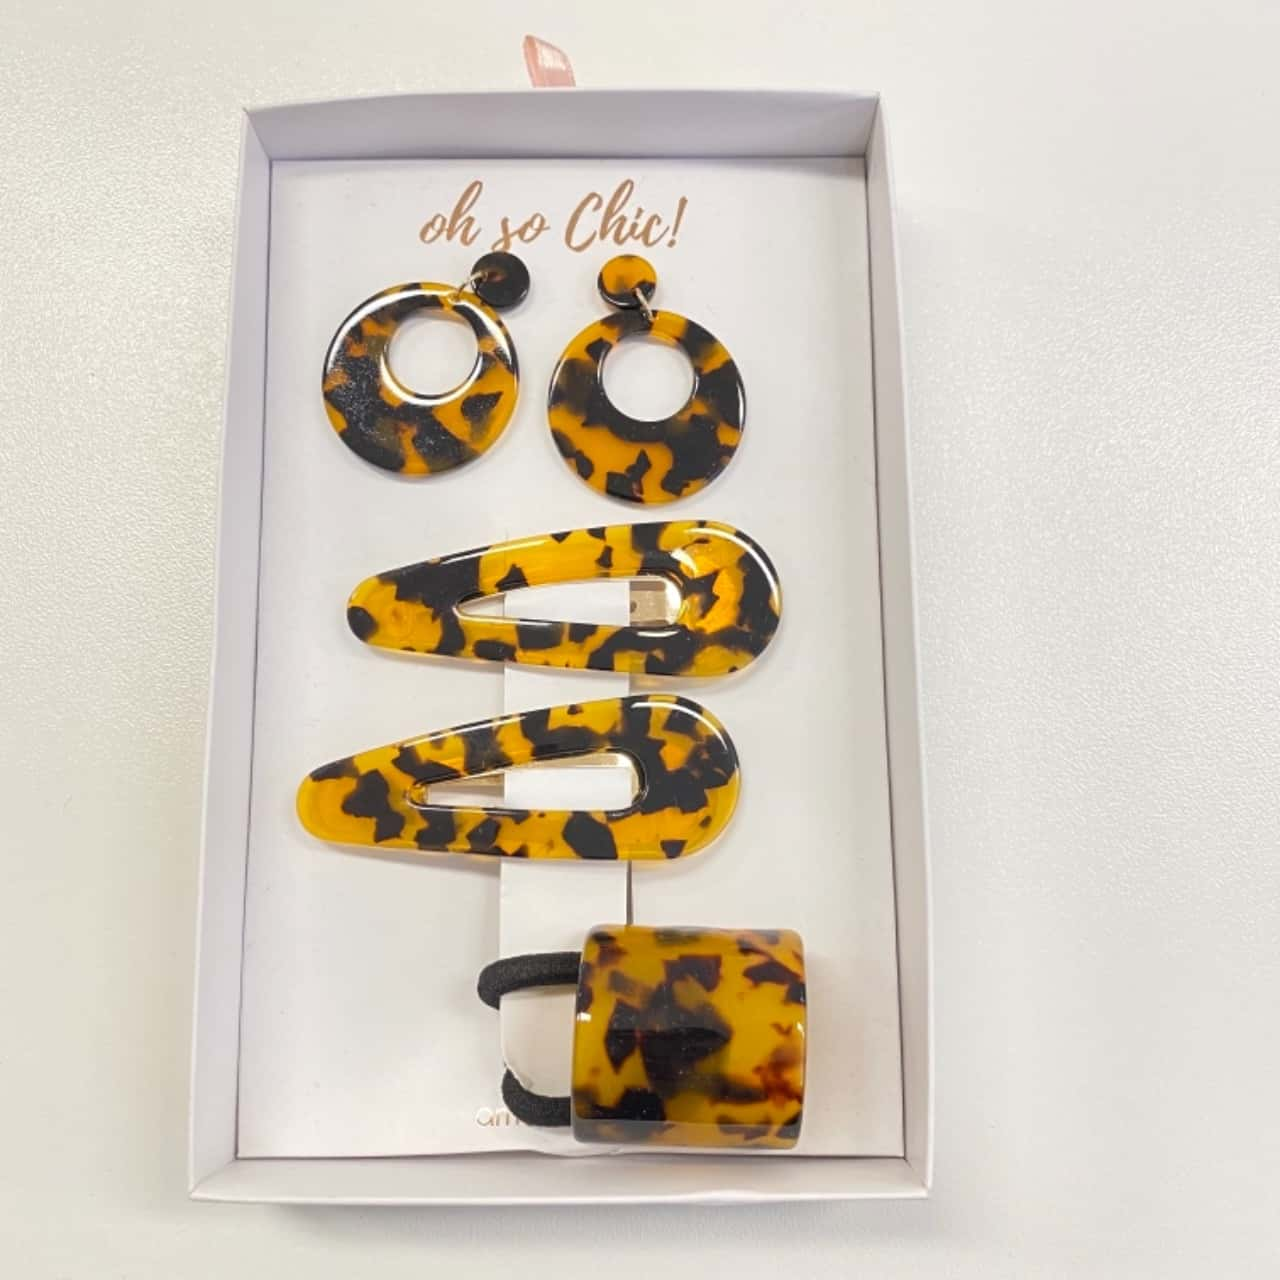 Amber Rose, Oh So Chic! Women's Earrings & Hair Clips/Band Leopard Print